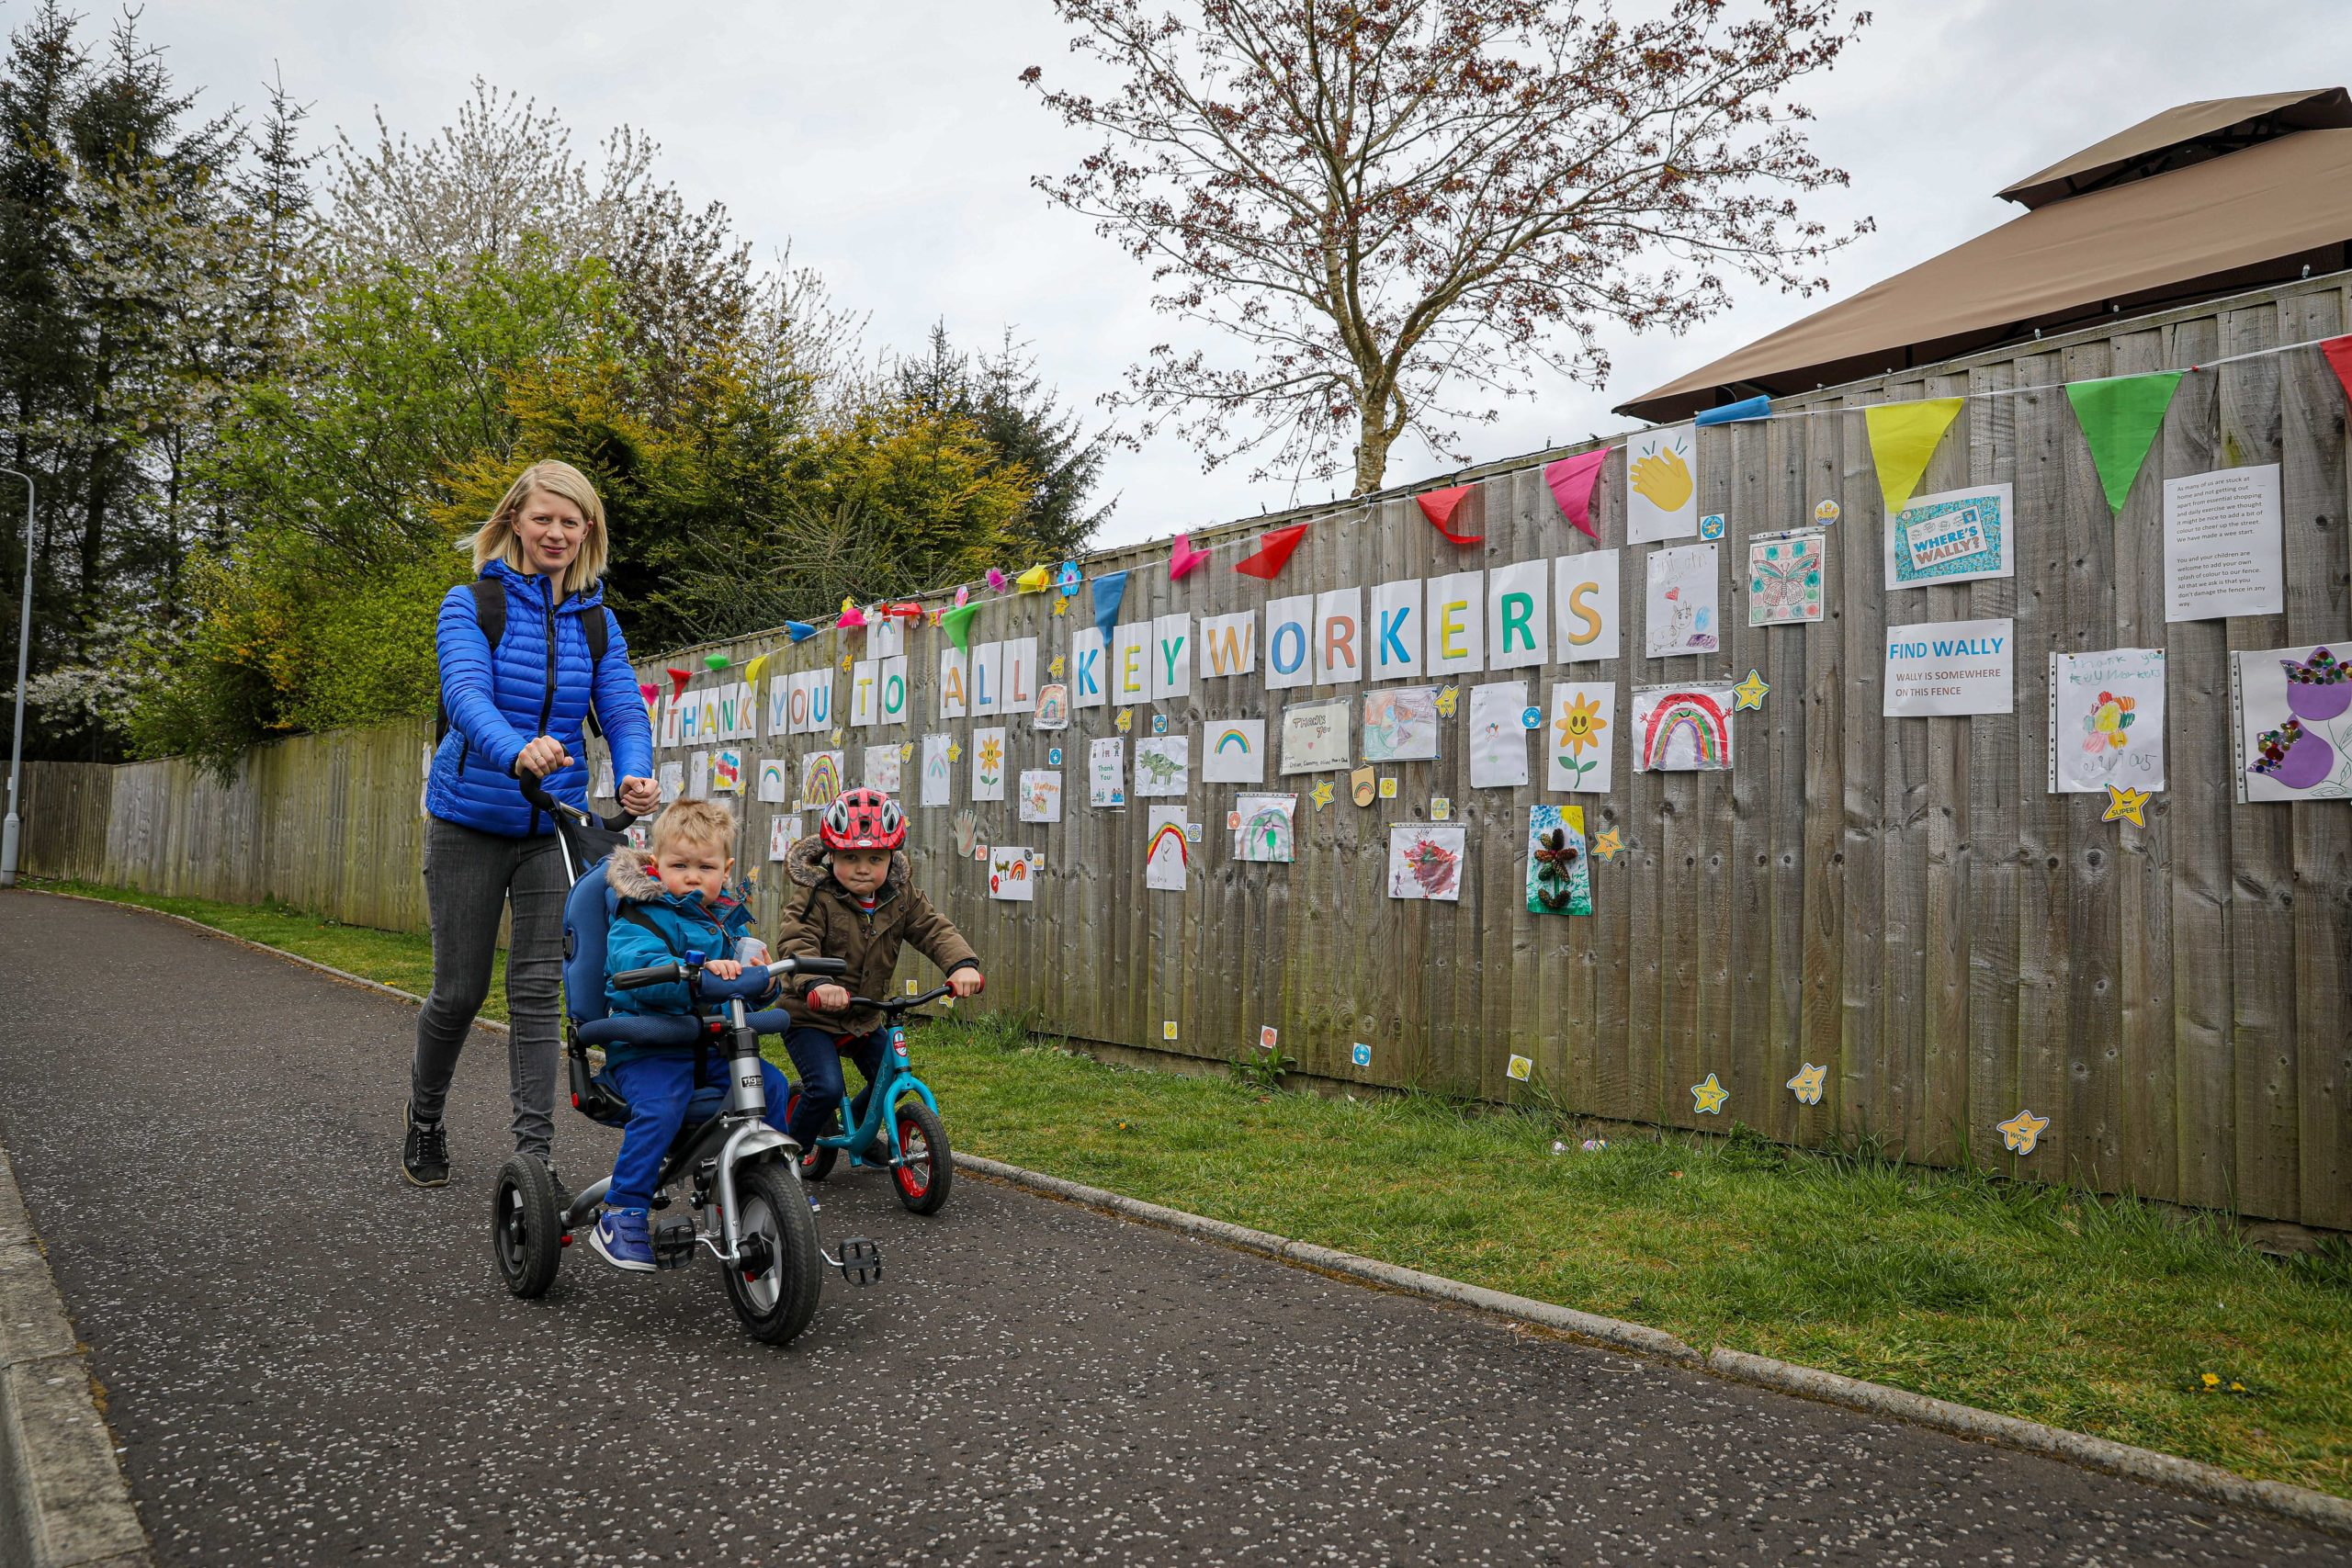 Tofthill residents, including Lisa Morris pictured with sons Rory, 3, and Austin, 1, are enjoying the estate's colourful wall of art.